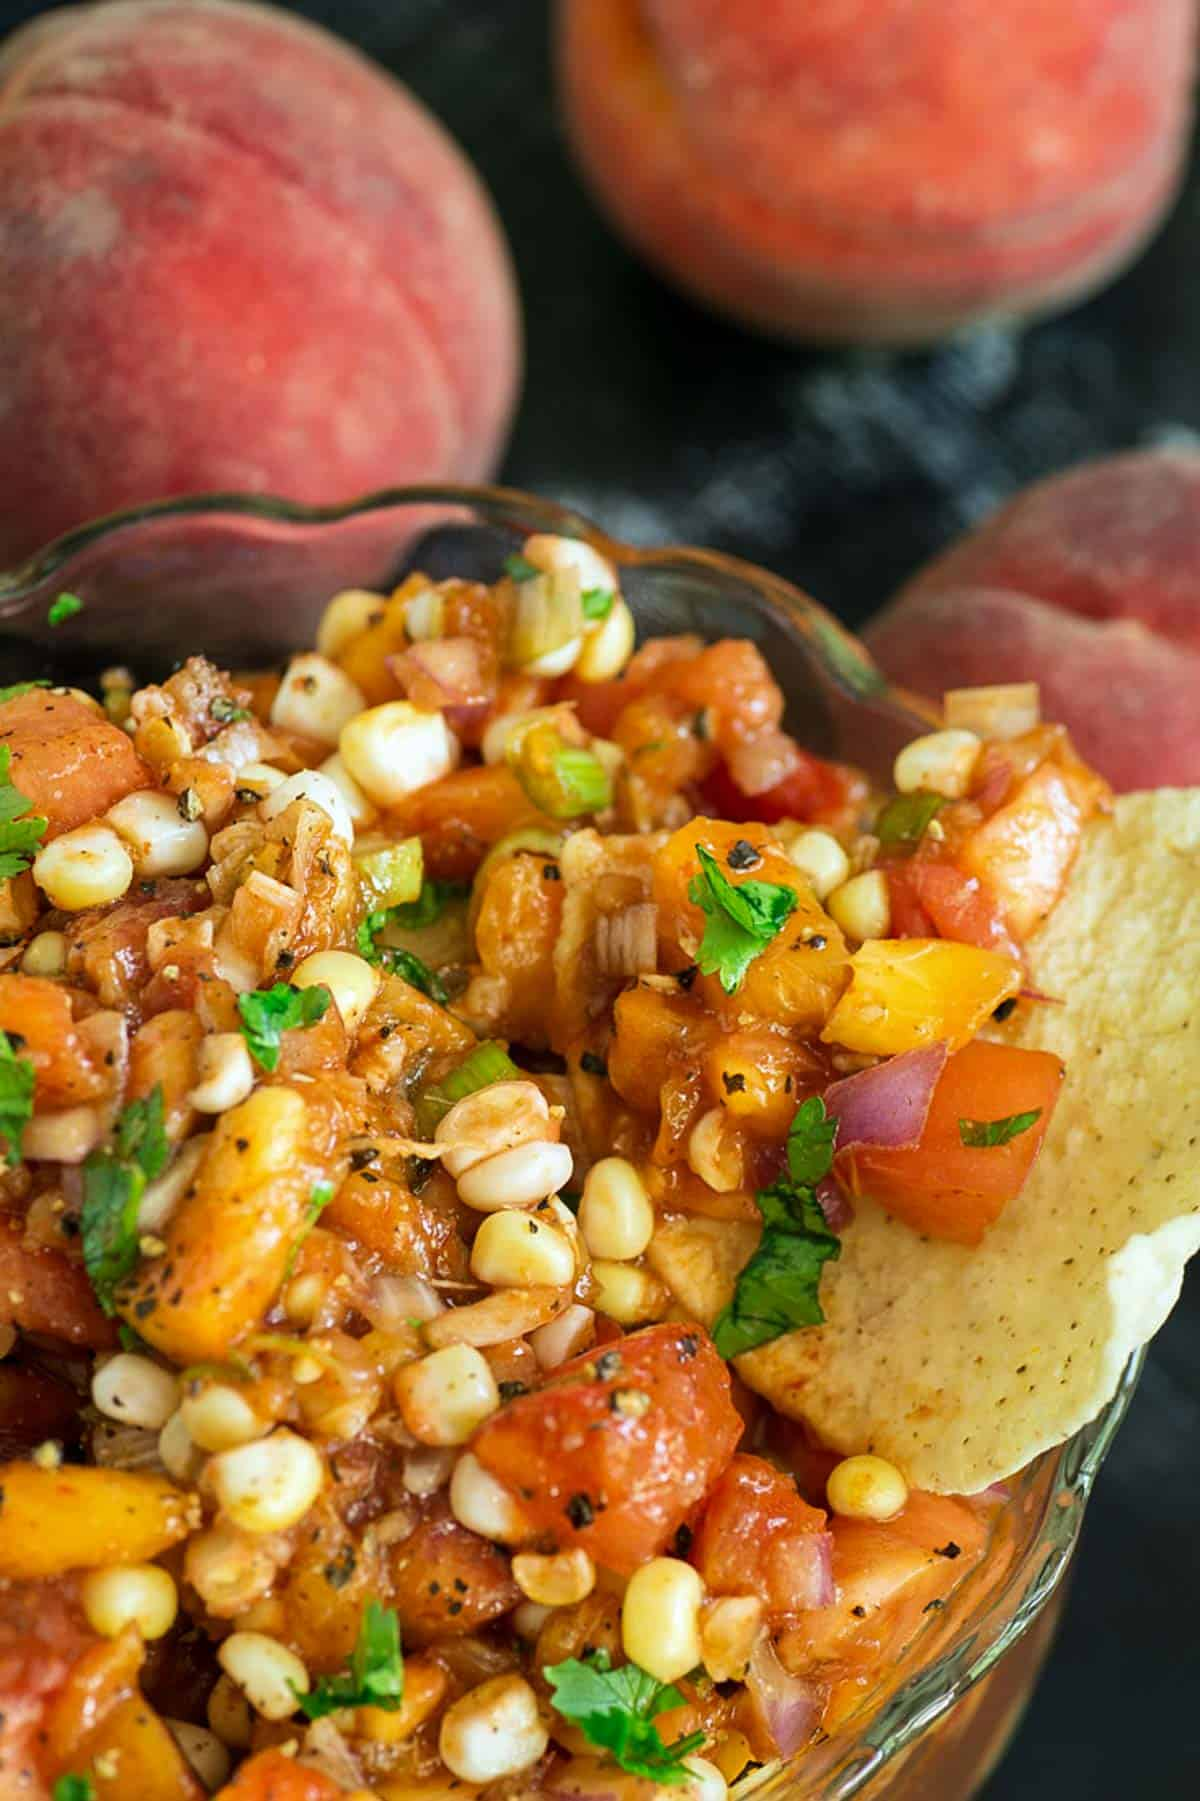 Peach and corn salsa in a bowl with tortilla chips